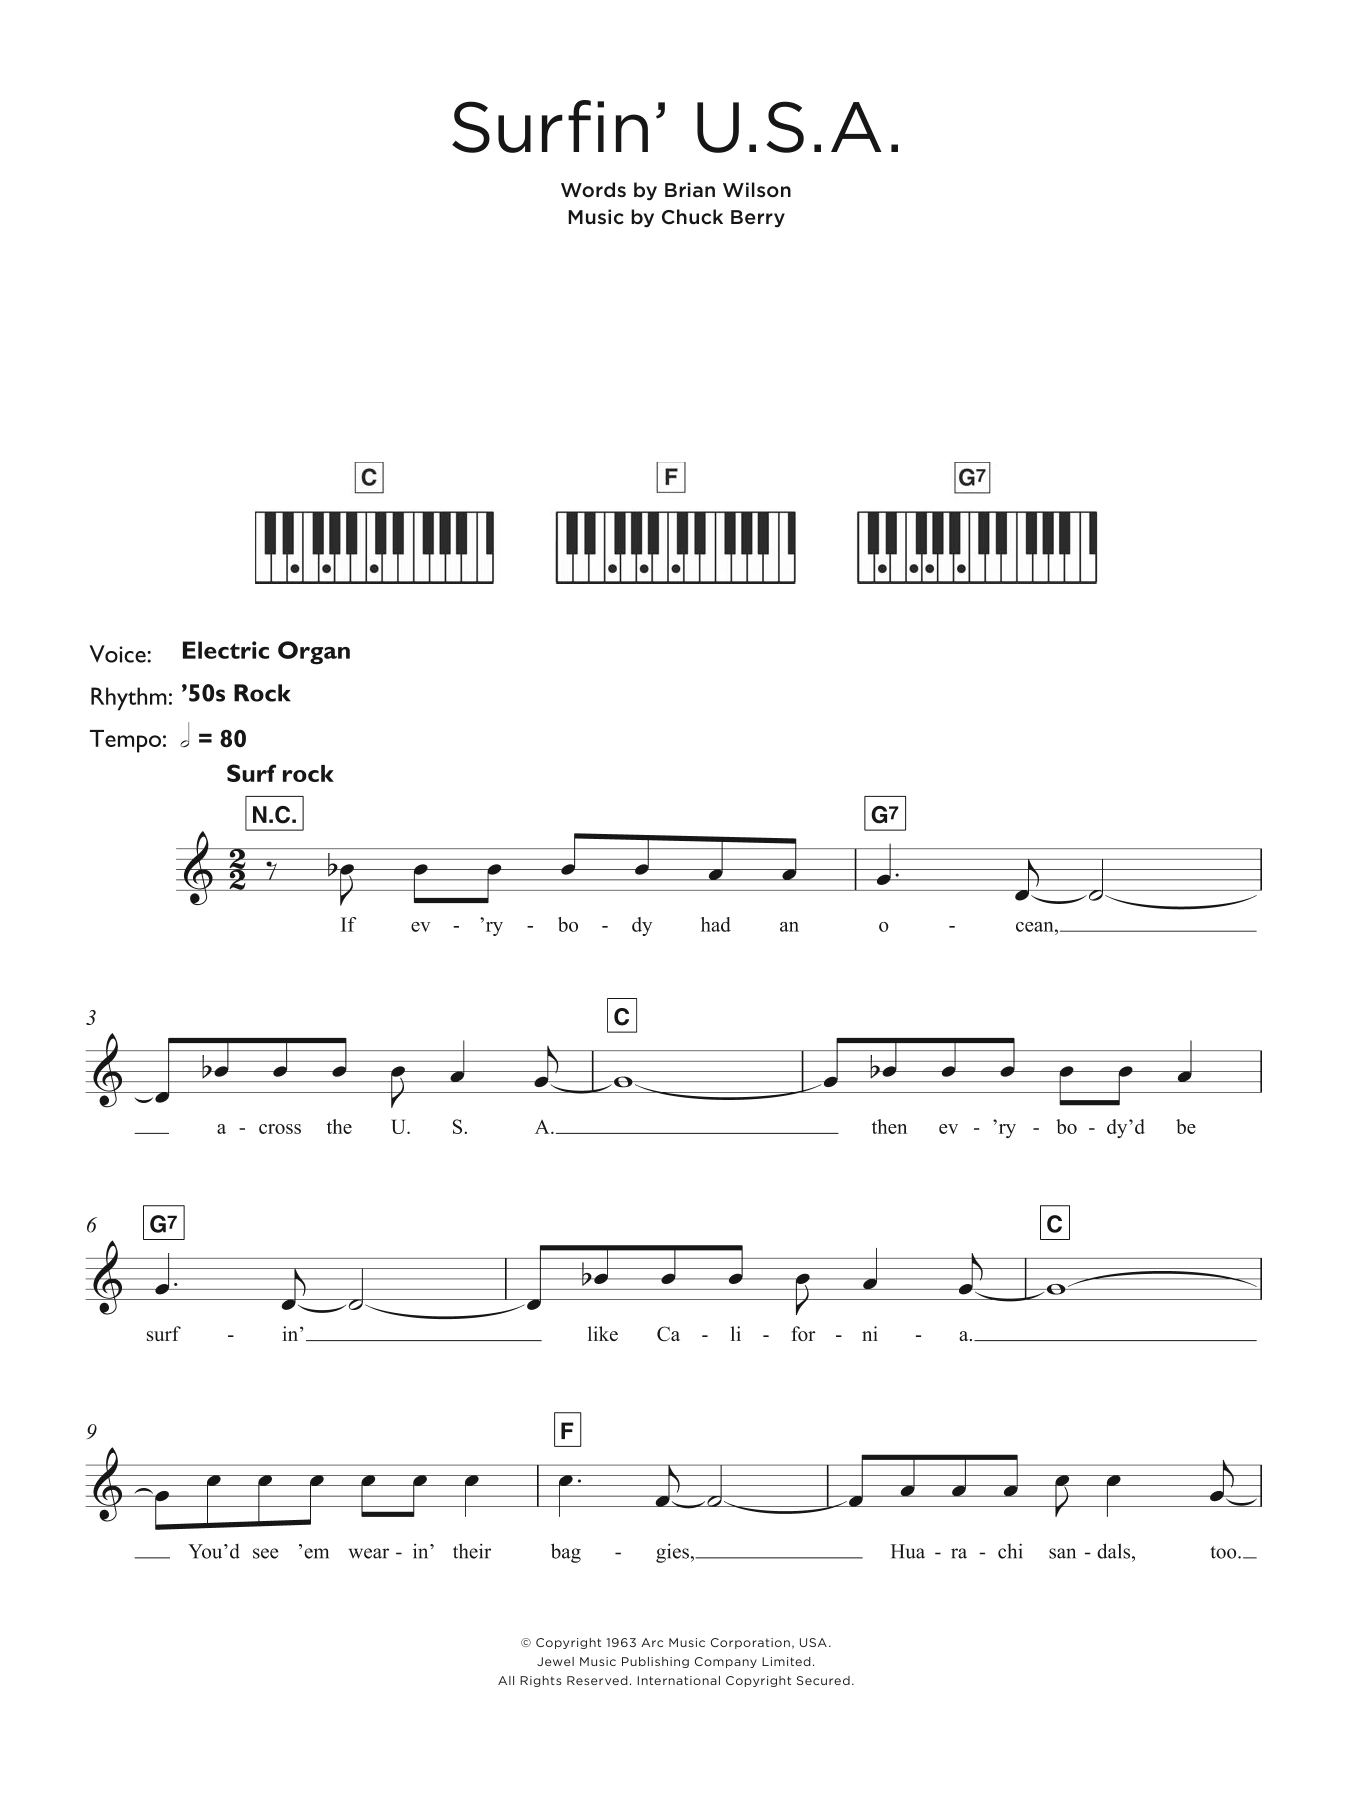 The beach boys surfin usa sheet music at stantons sheet music the beach boys surfin usa hexwebz Images